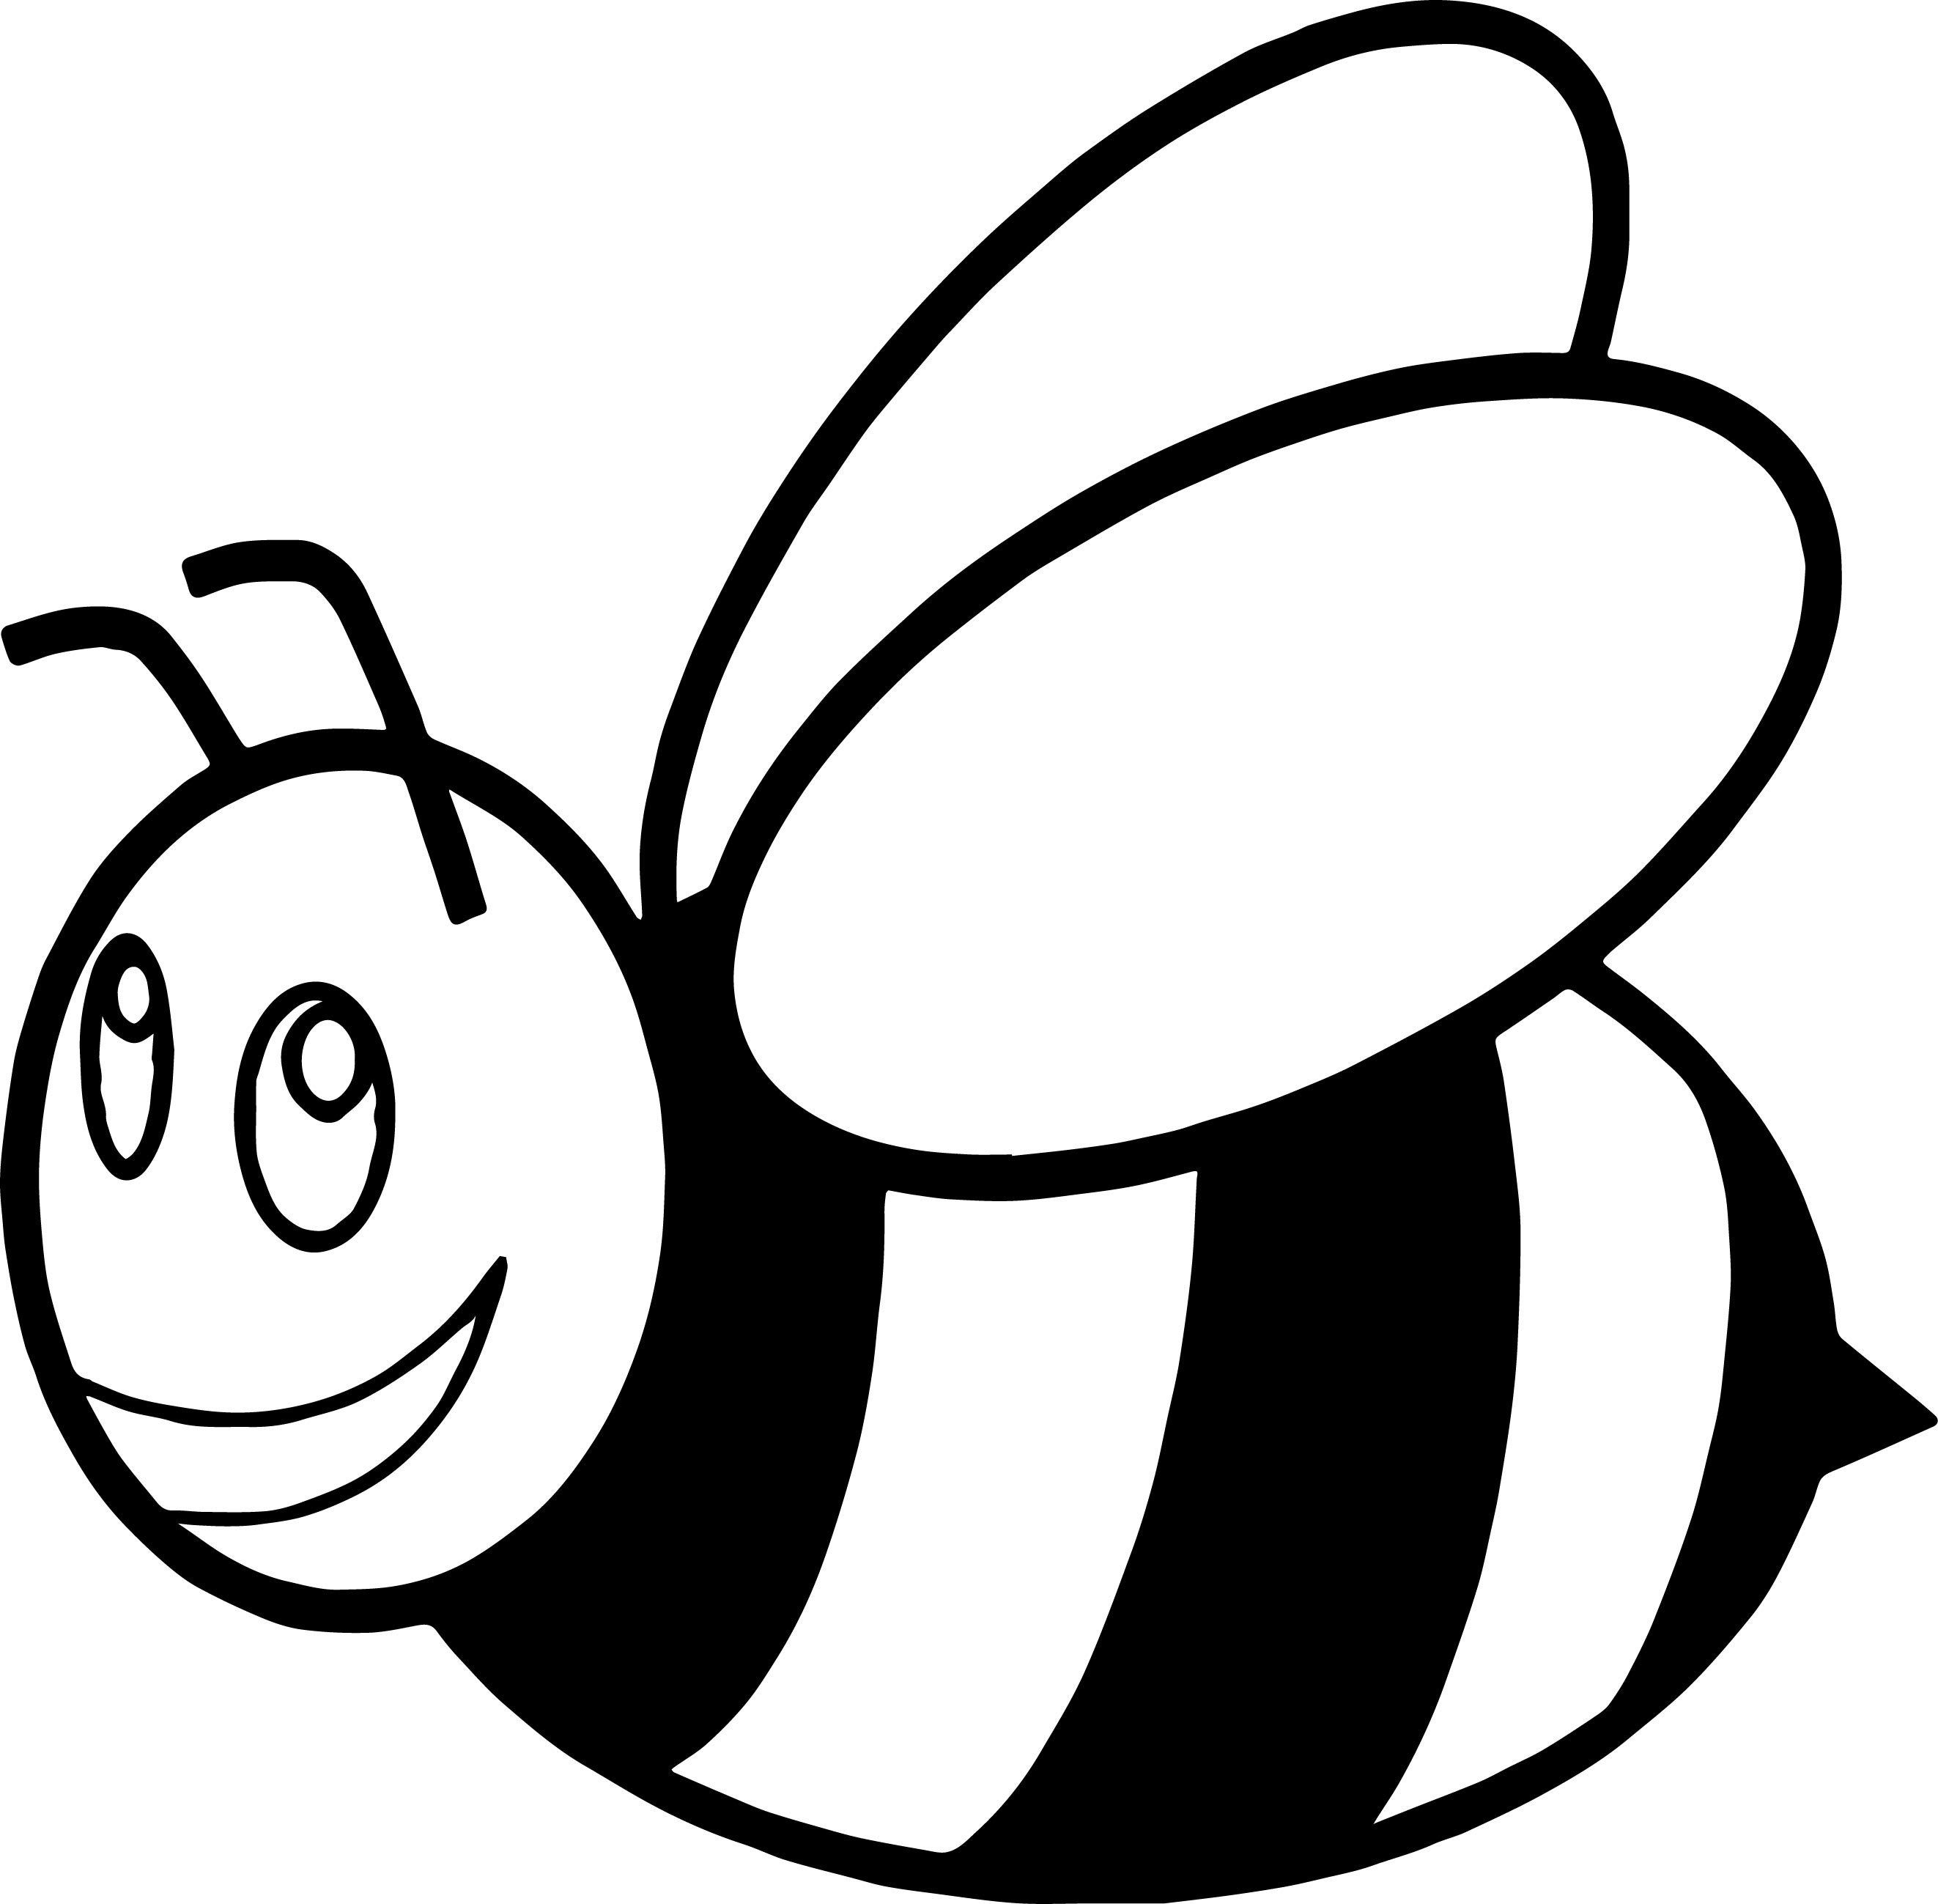 2645x2598 Bumblebee Clipart Coloring Page